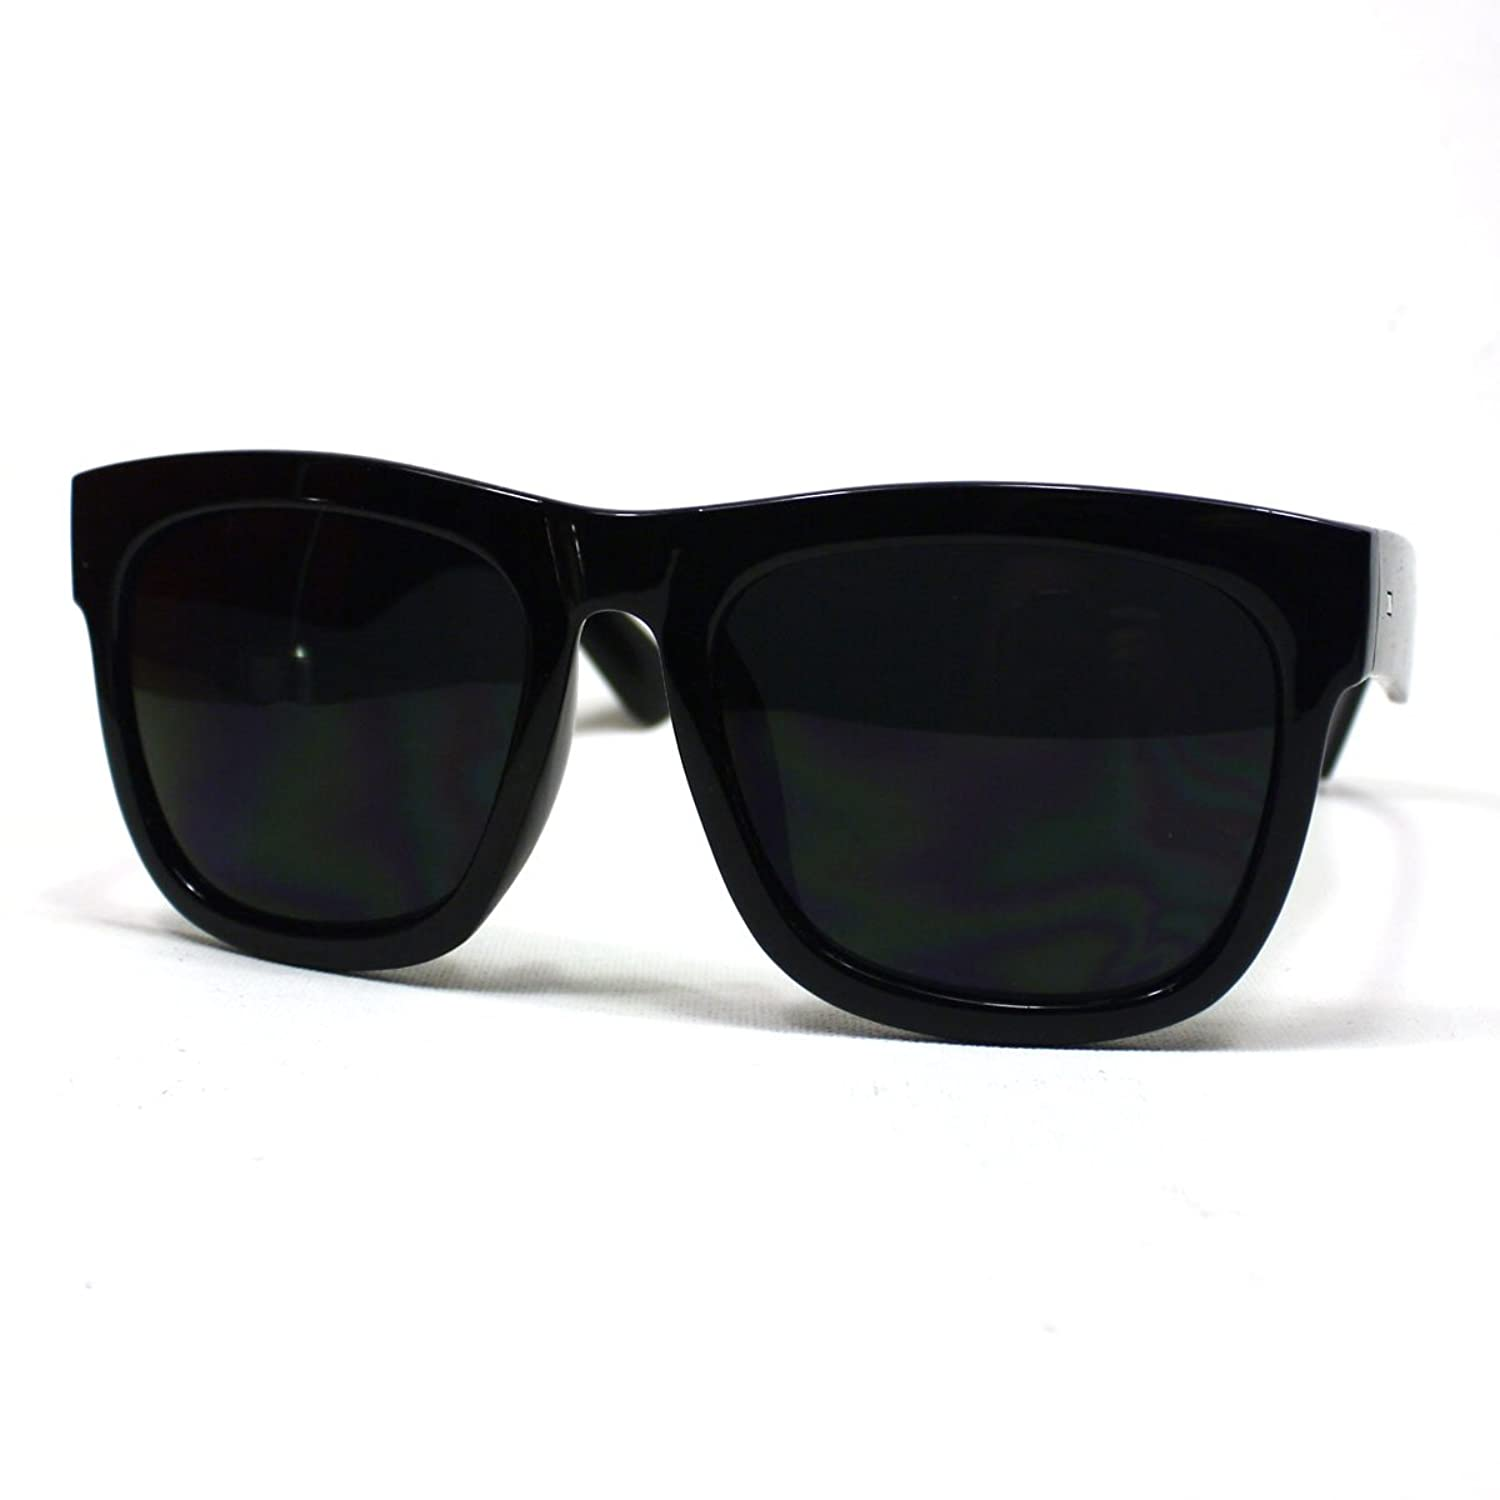 cheap wayfarer sunglasses  Amazon.com: Oversized Sunglasses Super Dark Lens Black Thick Horn ...